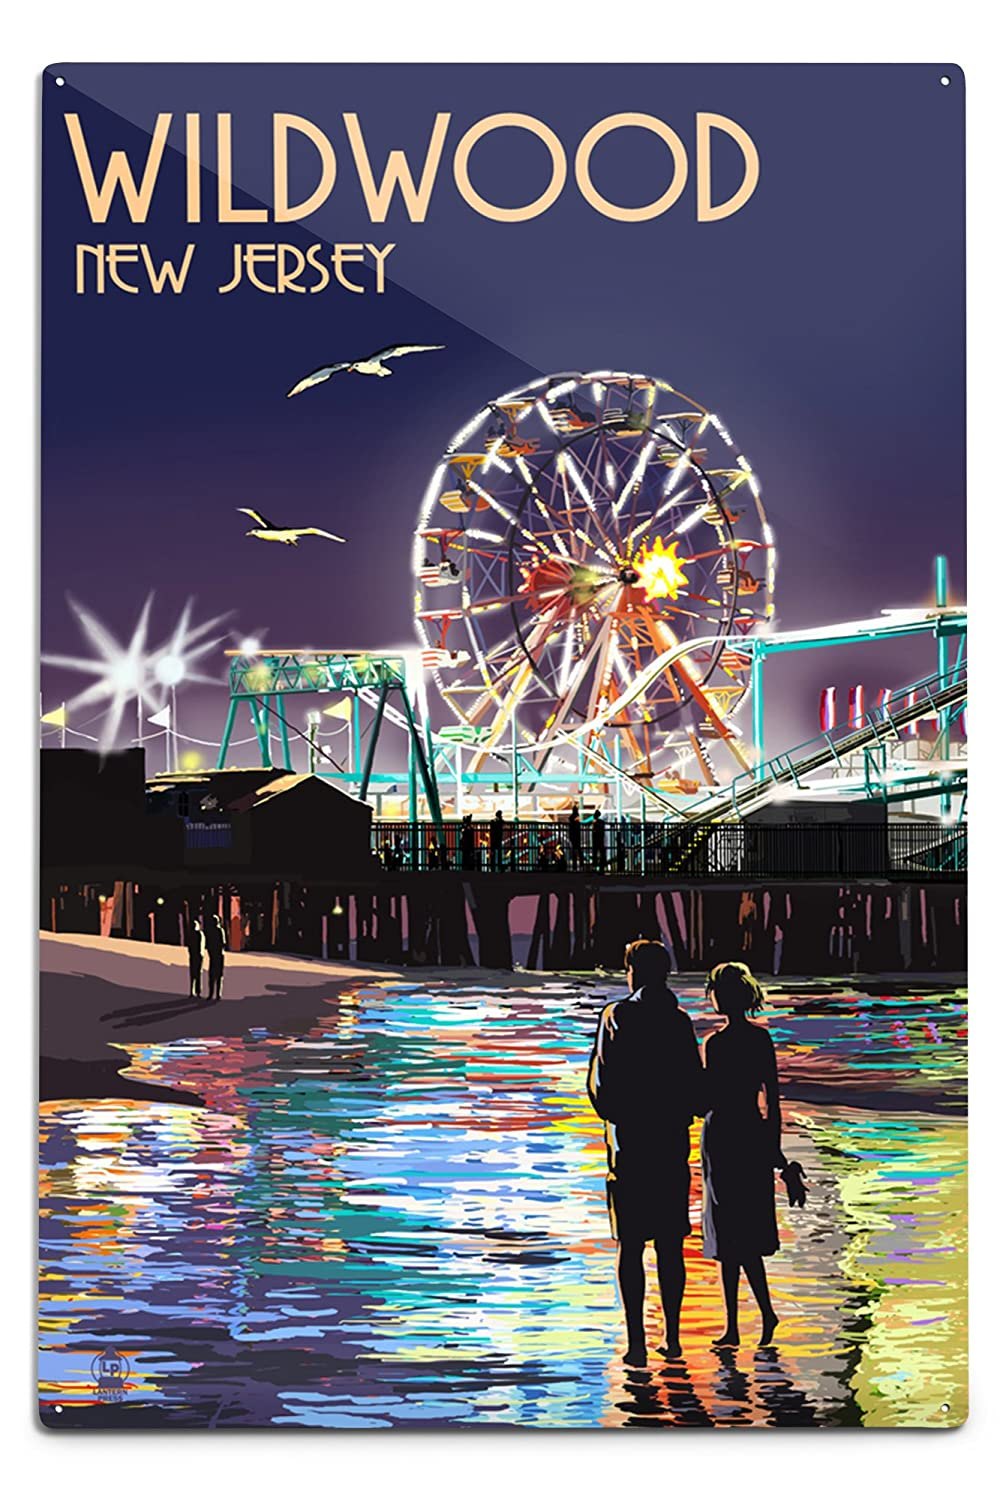 Wildwood、新しいジャージー – Pier and Rides at Night 12 x 18 Metal Sign LANT-44695-12x18M B06XZZK1L4  12 x 18 Metal Sign